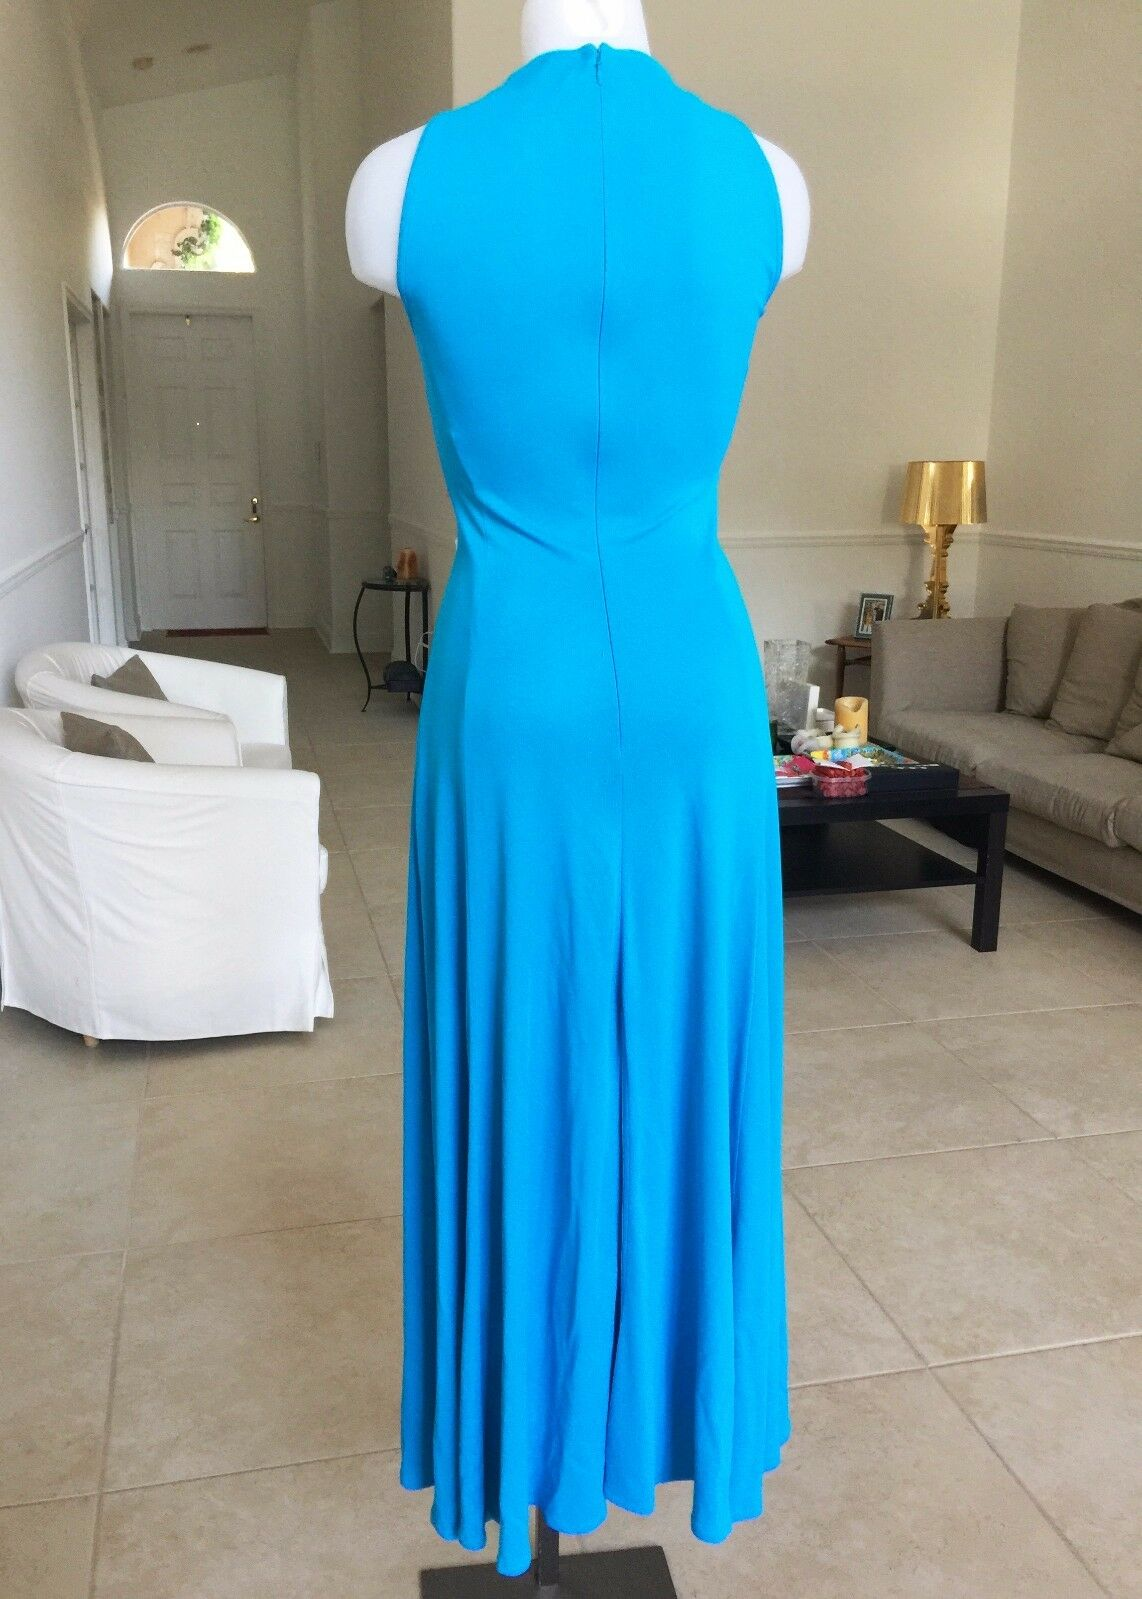 GIANNI VERSACE COUTURE turquoise evening gown, from summer 1993 1993 1993 9b735e